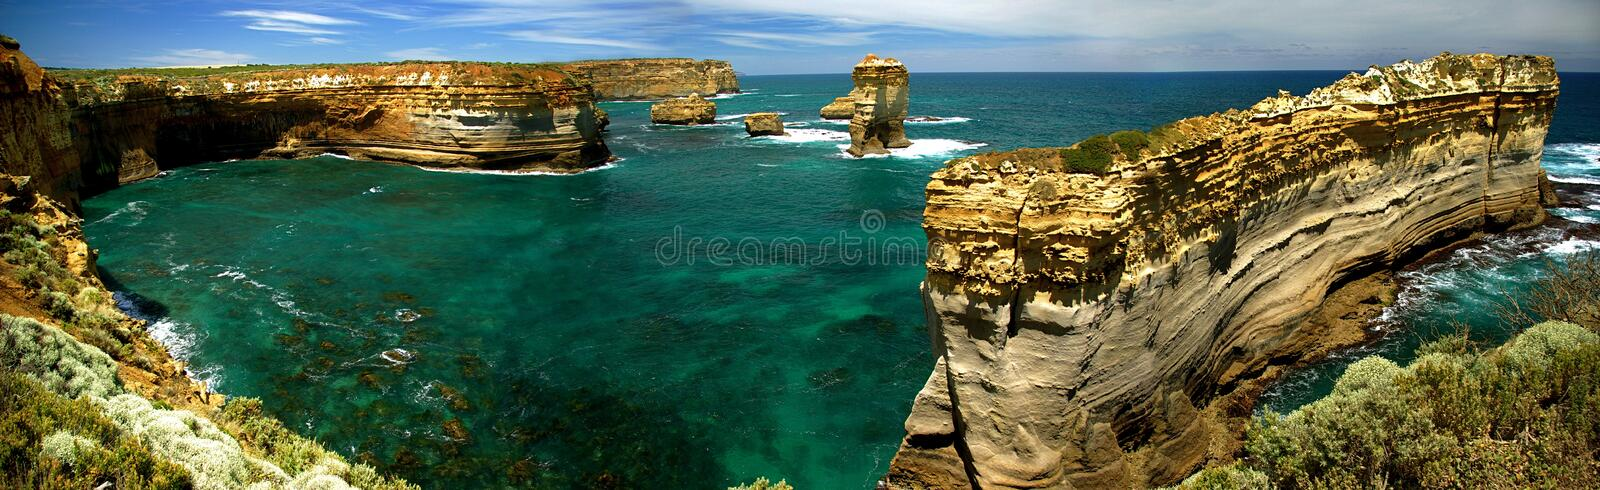 Loch Ard Gorge royalty free stock image